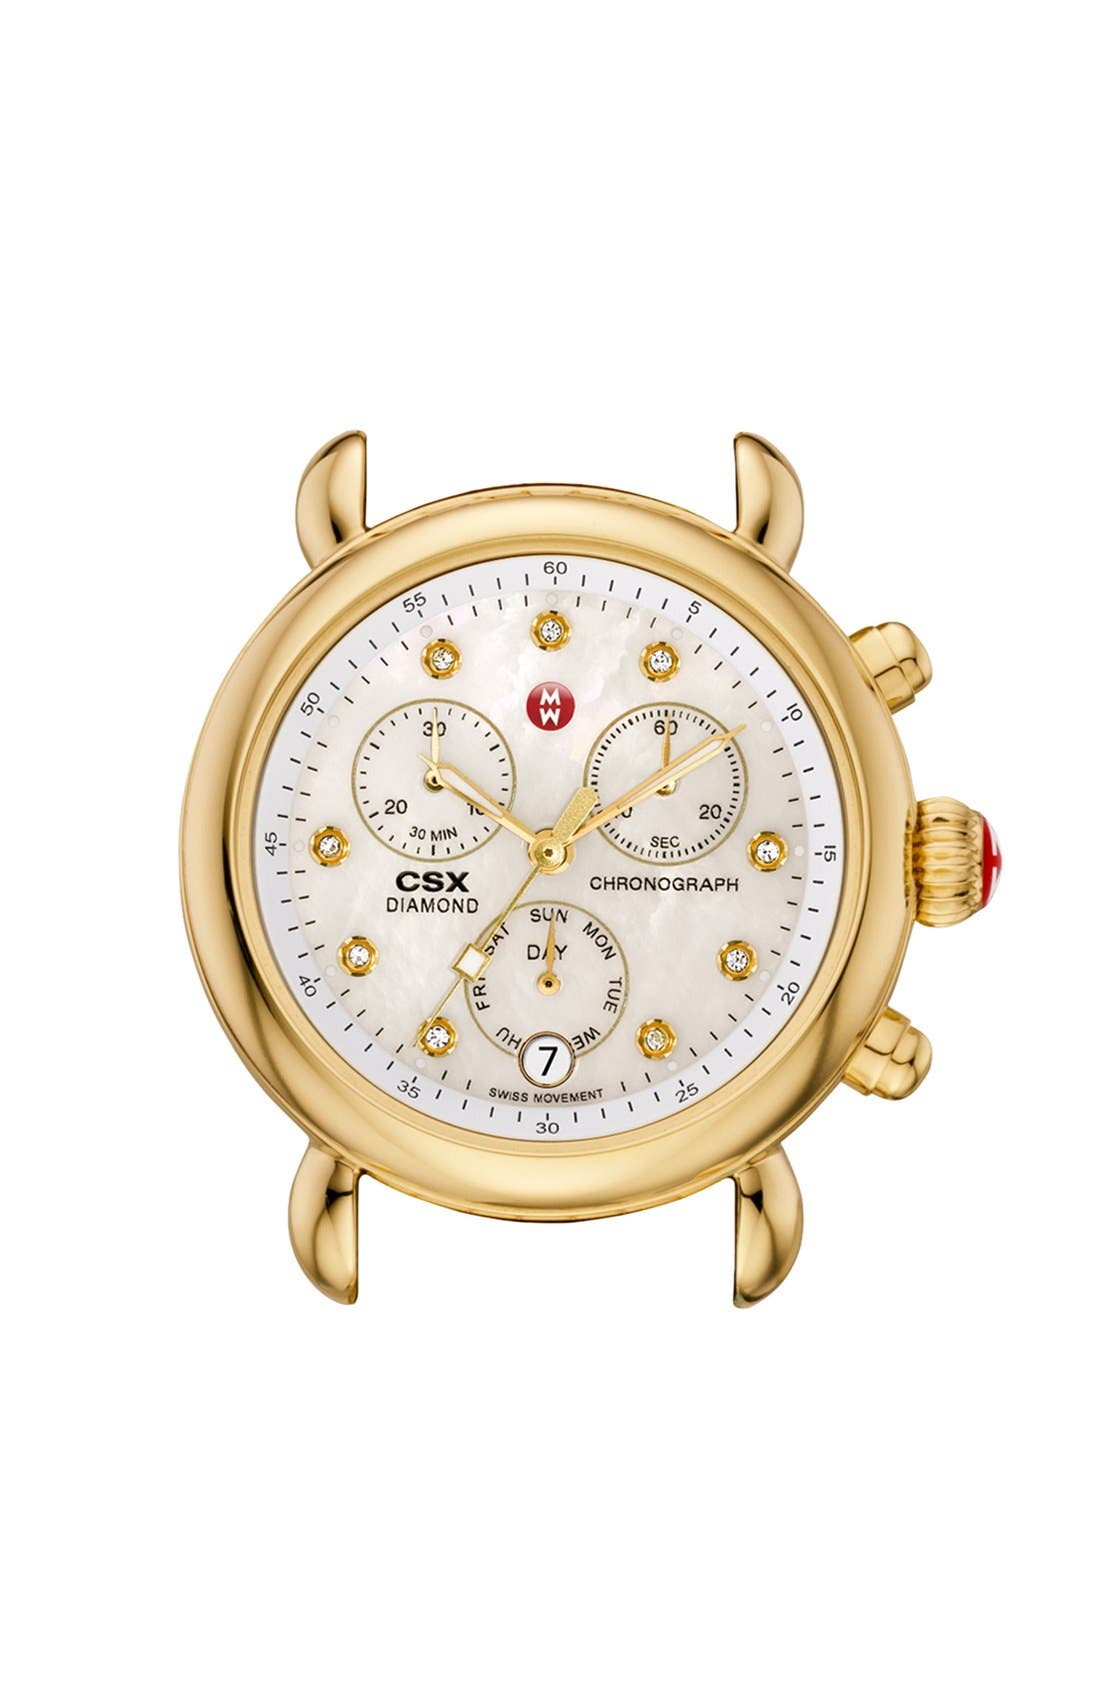 Main Image - MICHELE 'CSX-36' Diamond Dial Gold Plated Watch Case, 36mm